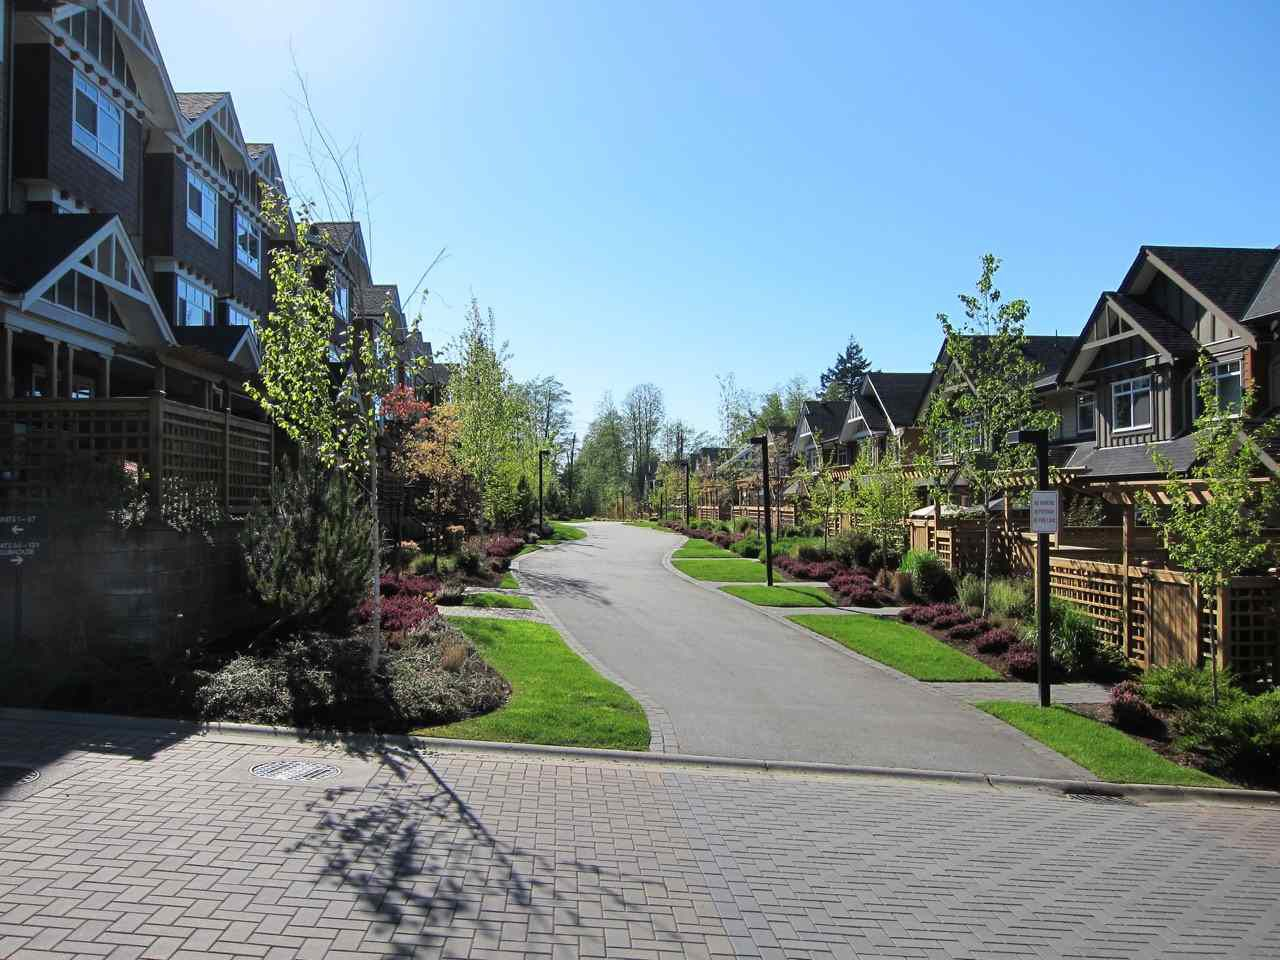 """Main Photo: 127 2979 156 Street in Surrey: Grandview Surrey Townhouse for sale in """"Enclave"""" (South Surrey White Rock)  : MLS®# R2109121"""